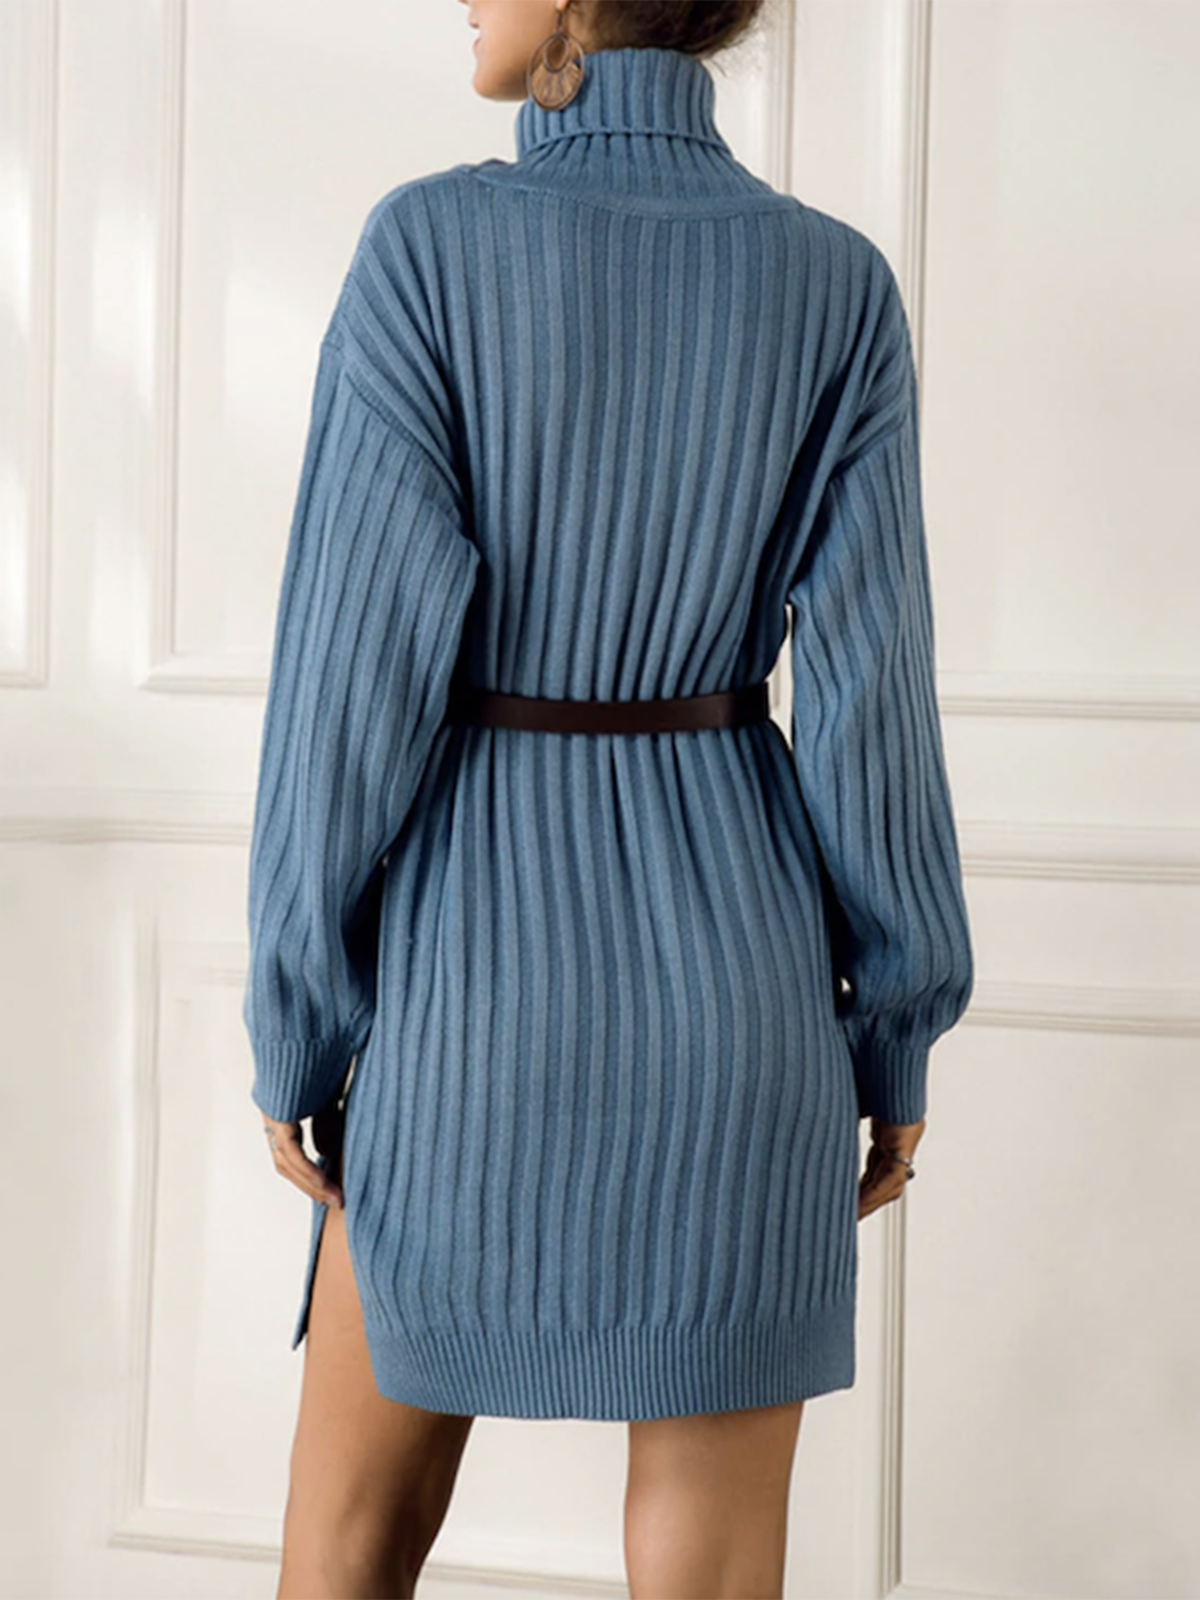 Women's high neck knitted dress